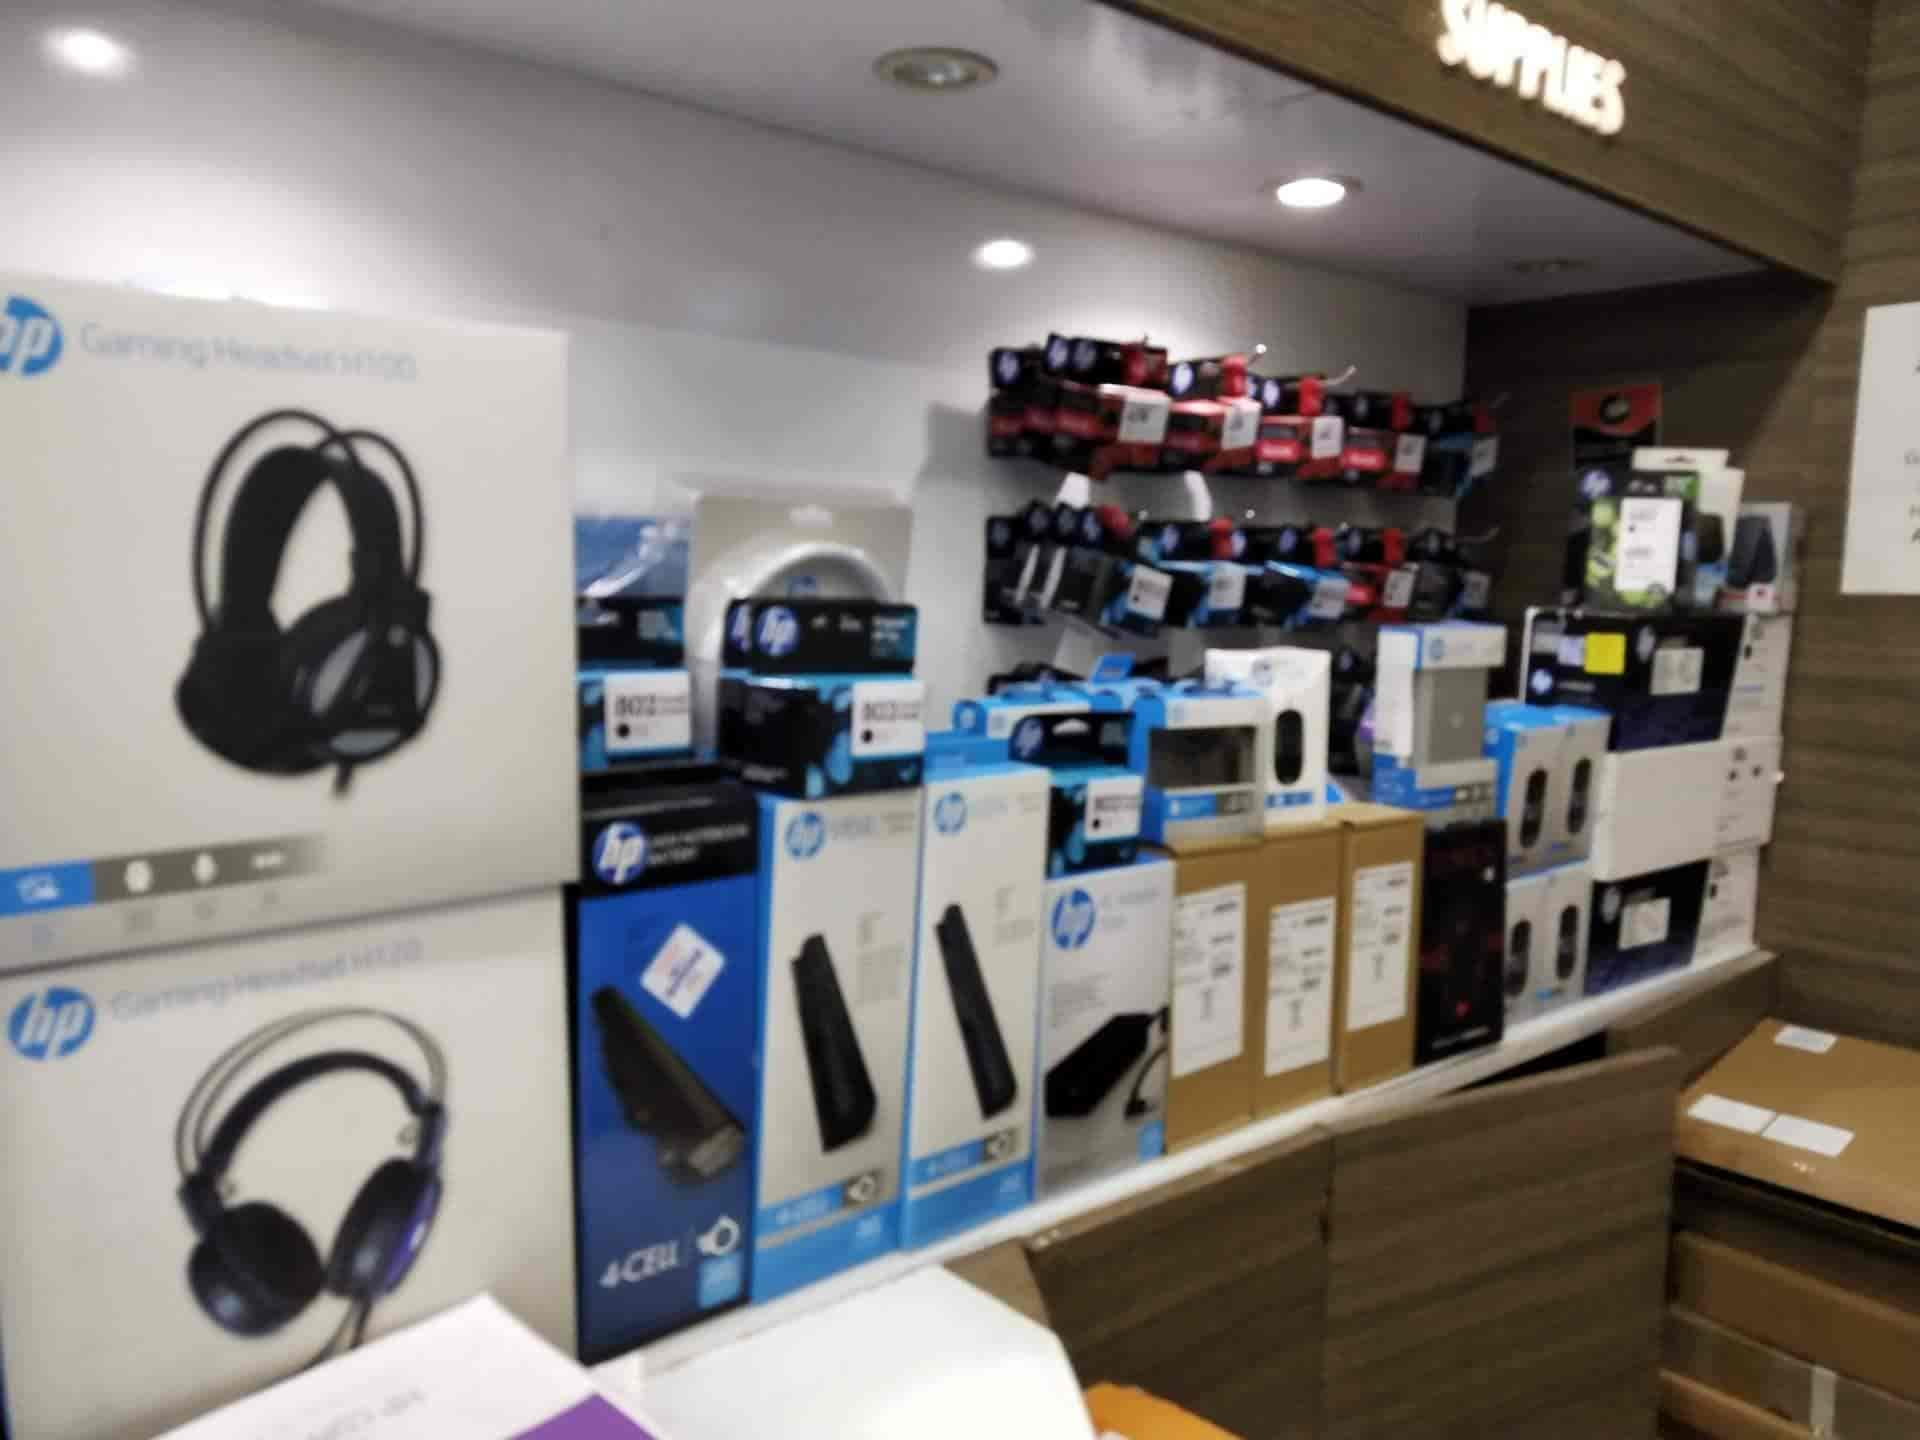 3bc87ec8b2b Sv Computers N Gadgets HP Store, Fathekhanpet - Laptop Dealers-HP in  Nellore - Justdial